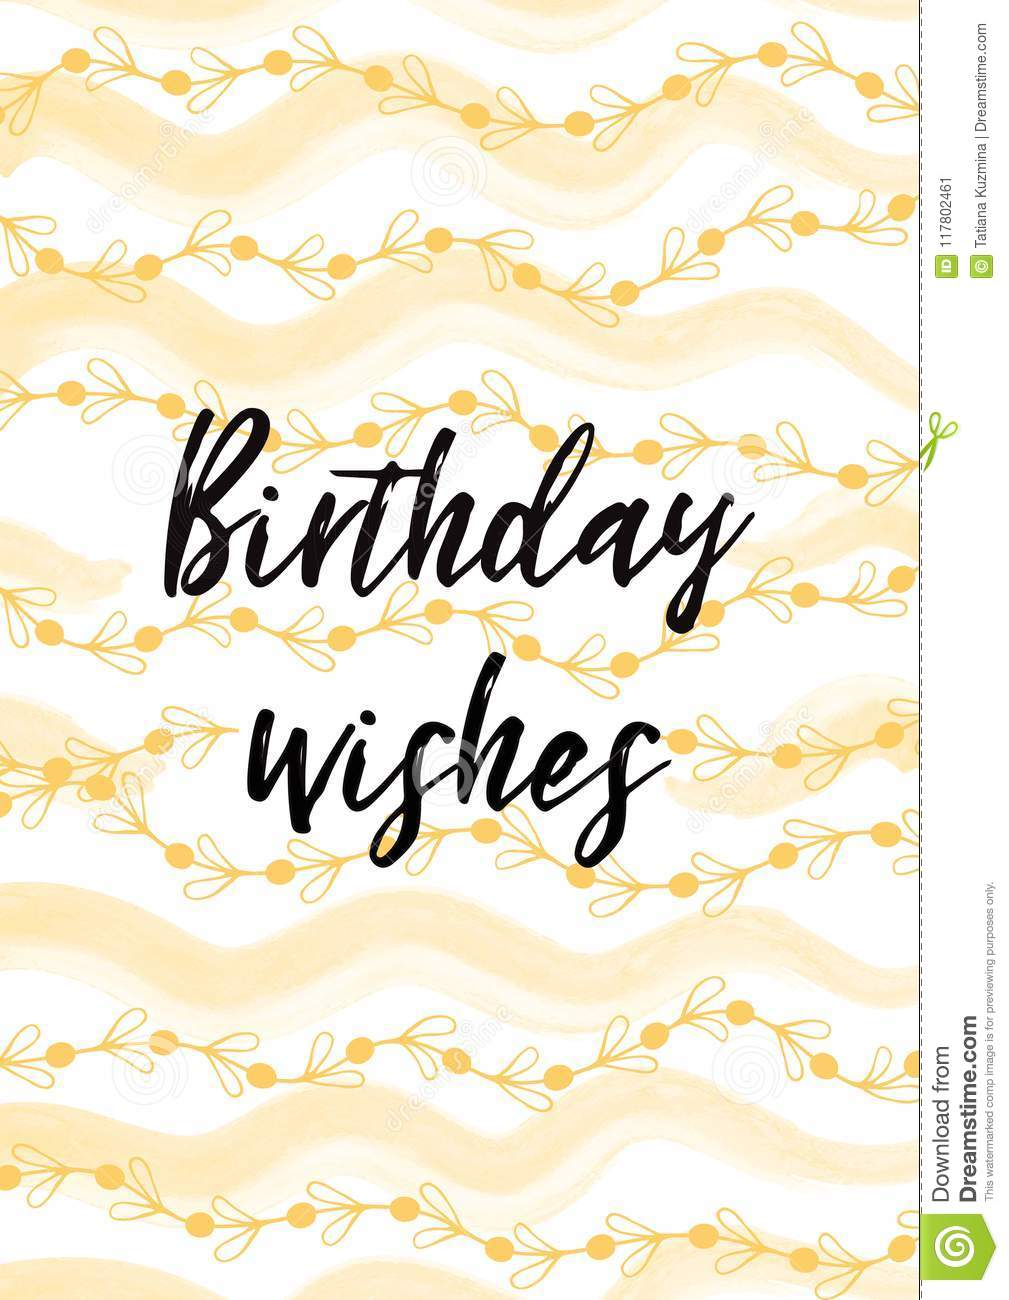 Birthday Wishes Vector Card Illustration Decorated Light Yellow Hand Drawn Ornament White Background Lettering Element Text Positive Clogan Cute Phrase